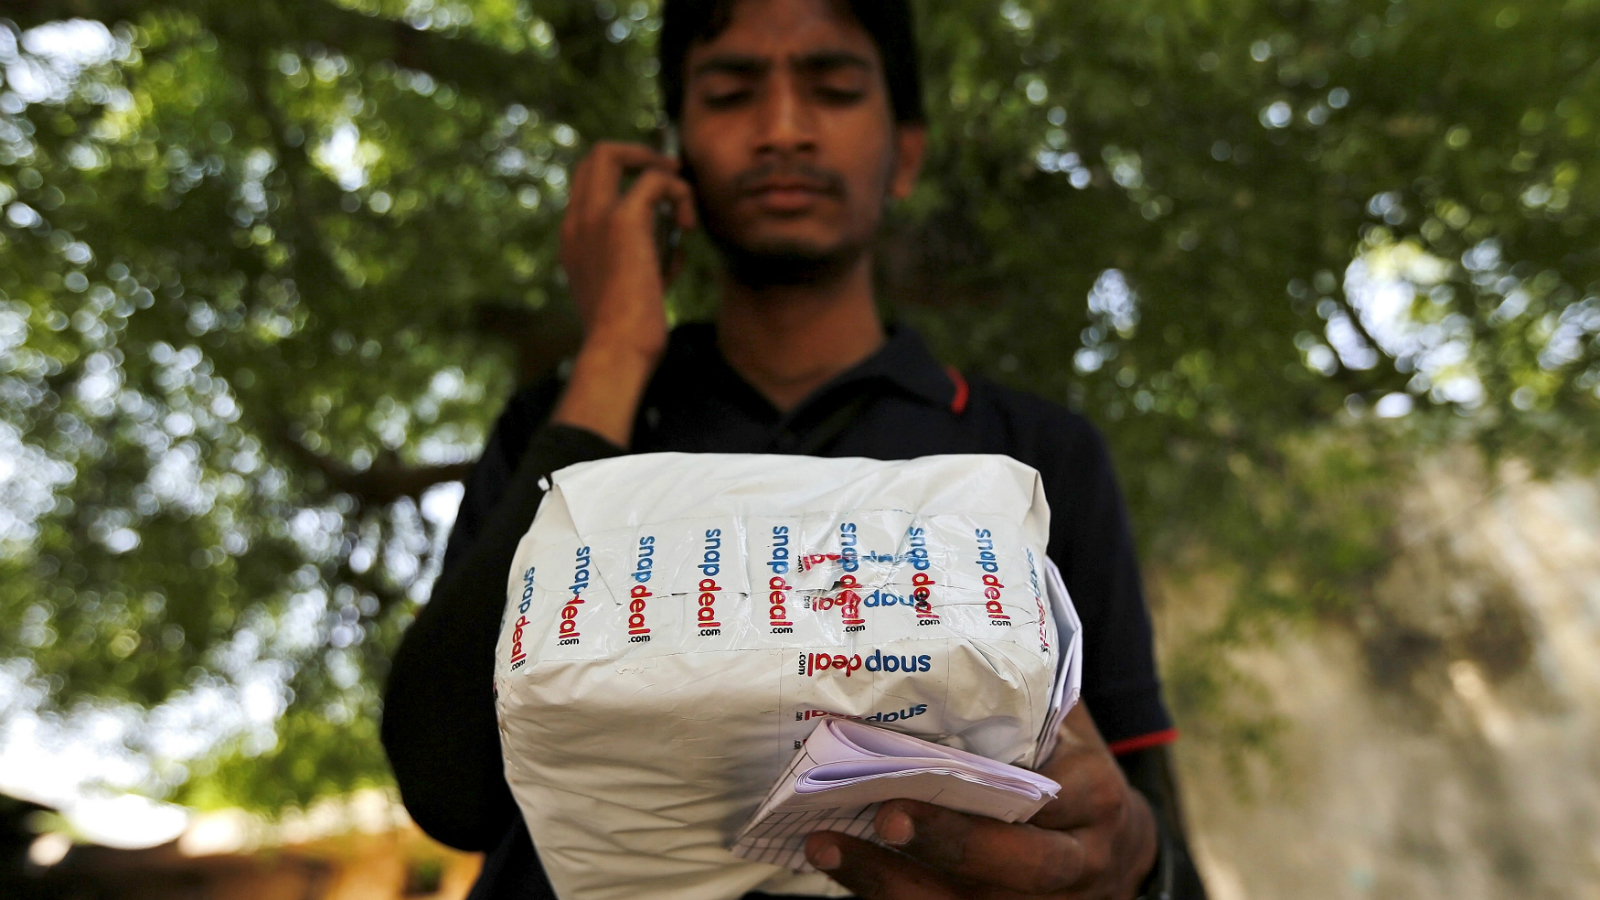 A worker of Indian e-commerce company Snapdeal.com makes a call to a customer before delivering a packet in Ahmedabad, India, April 17, 2015. After losing top engineering talent for years to America's tech heartland of Silicon Valley, India is luring them back as an e-commerce boom sparks a thriving start-up culture, unprecedented pay, and perks including free healthcare for in-laws. Picture taken April 17, 2015. To match INDIA-ECOMMERCE/WORKERS. REUTERS/Amit Dave